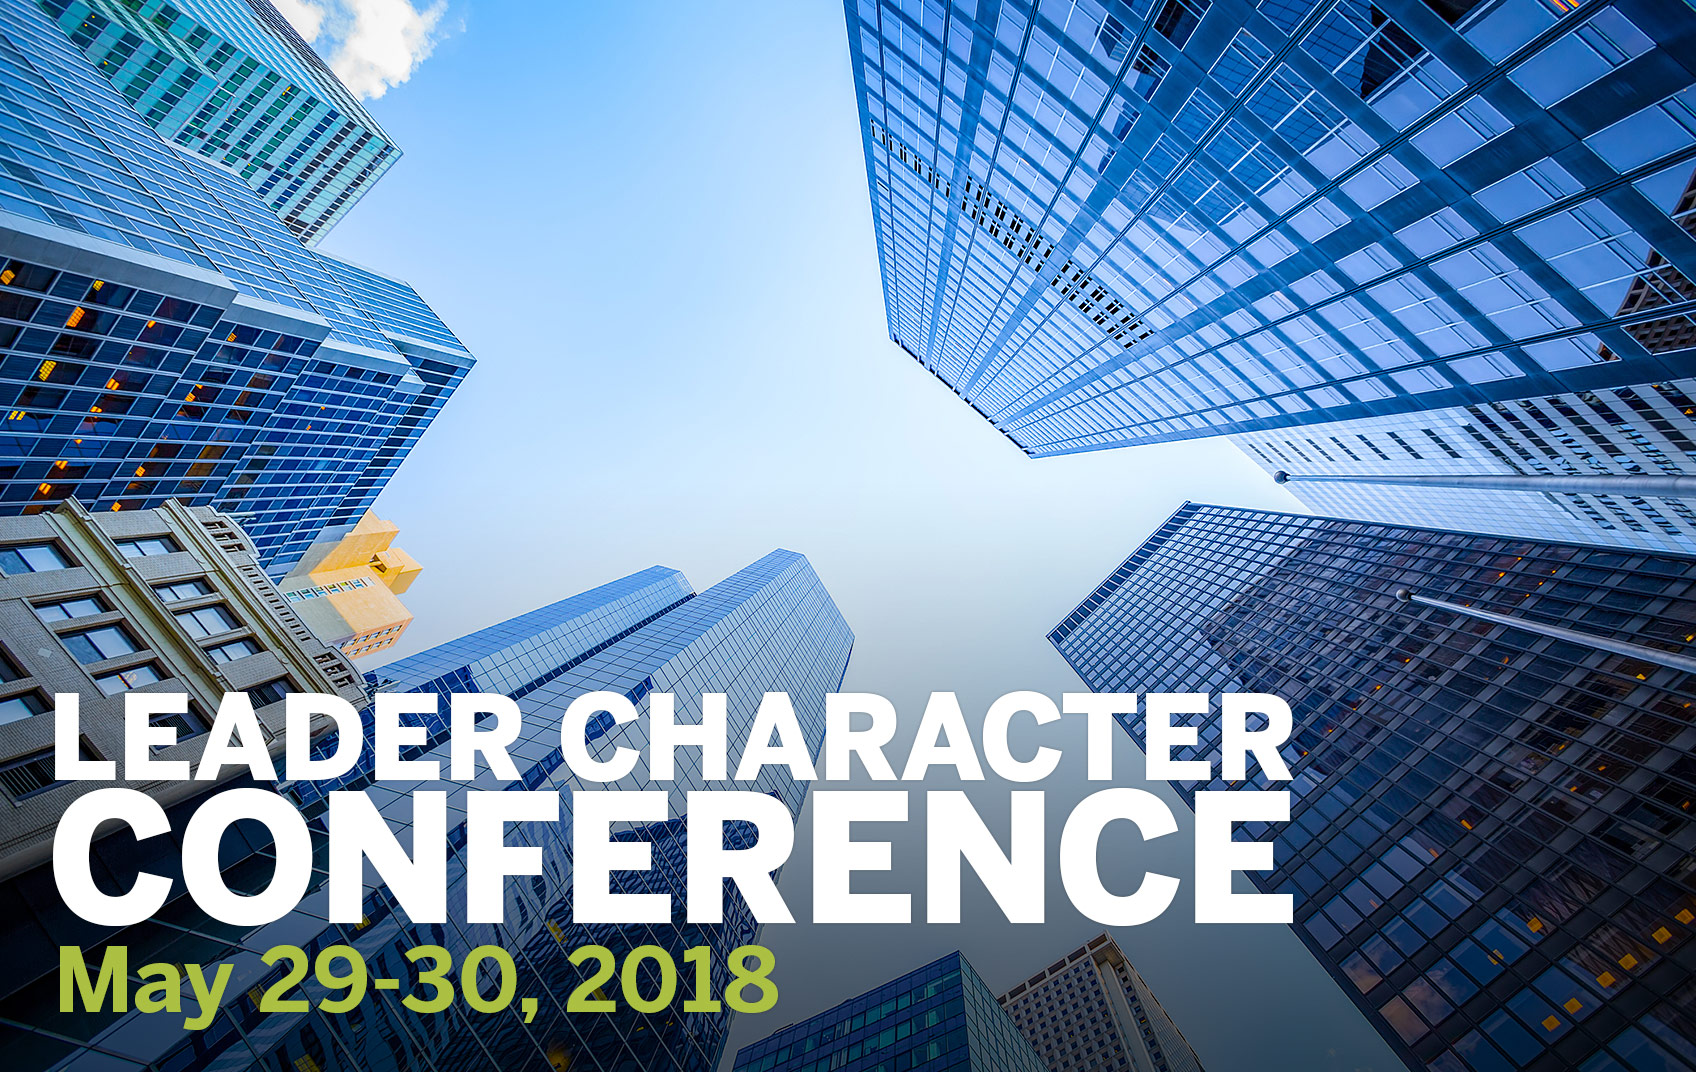 2018 Leader Character Conference